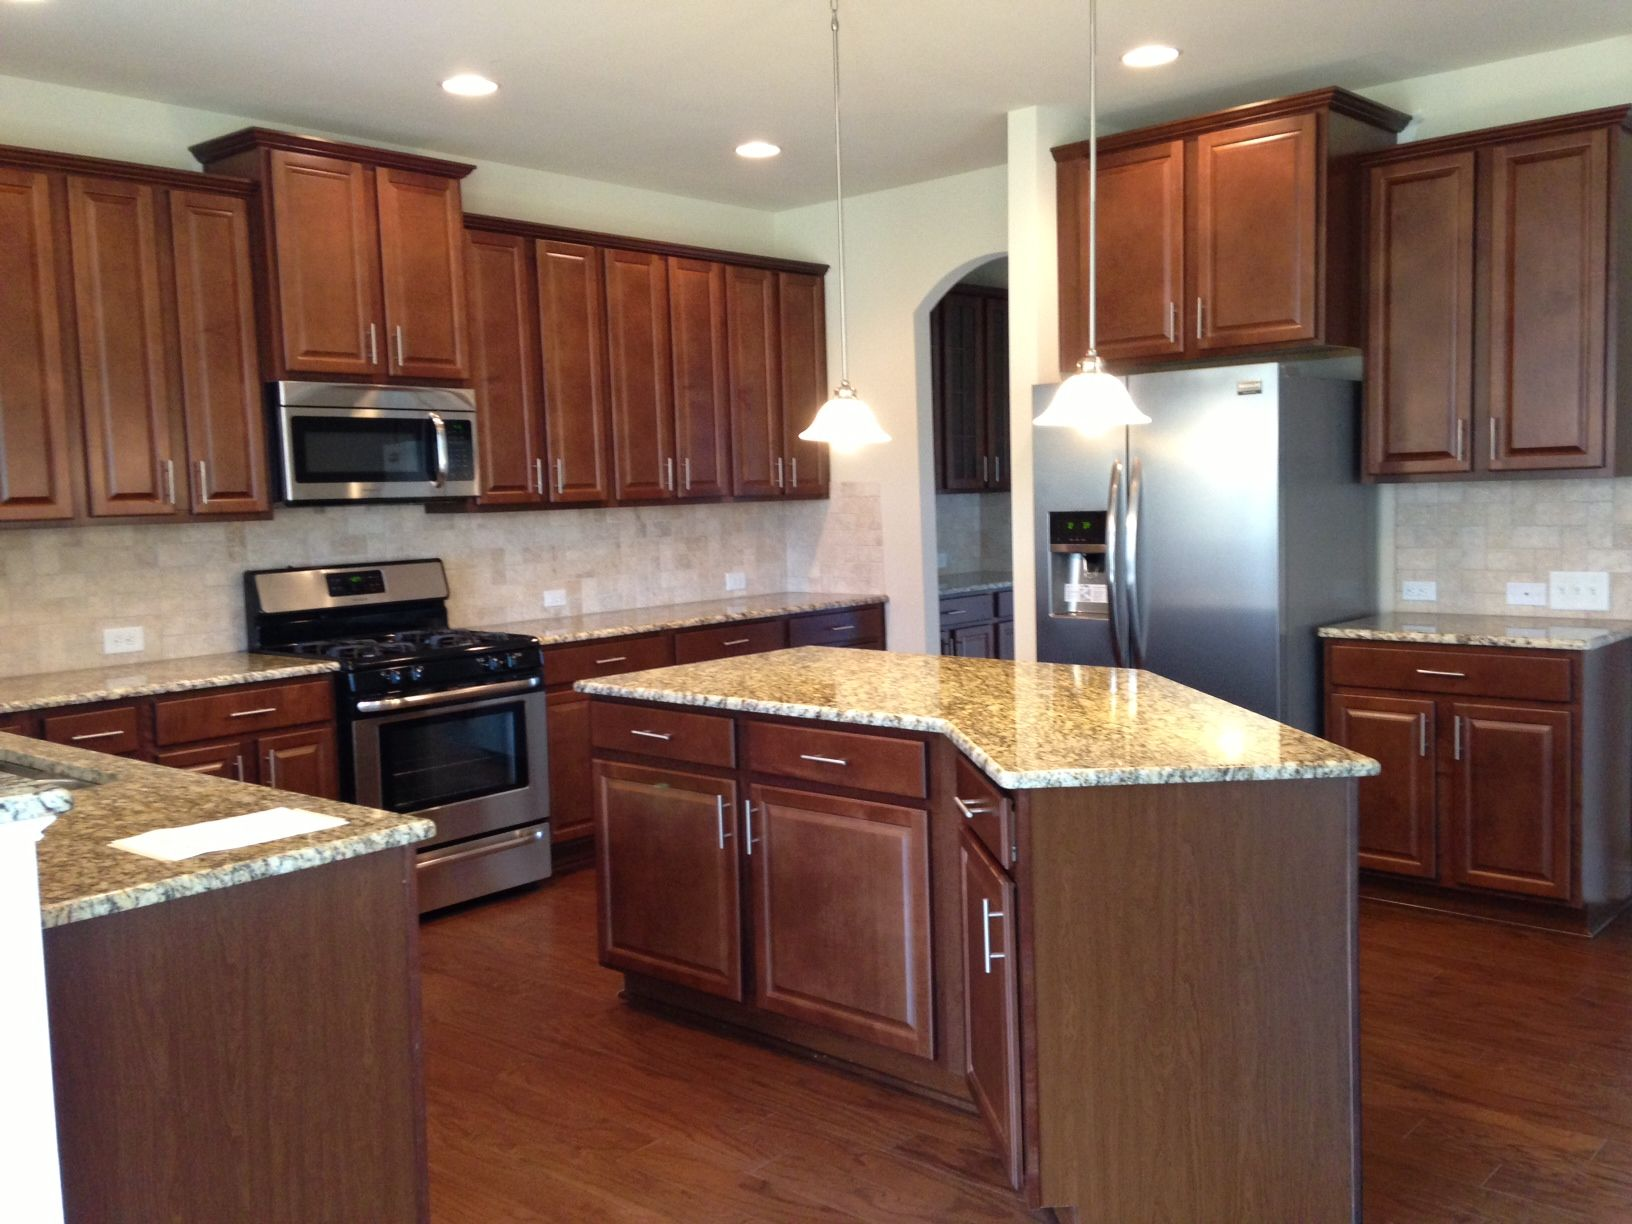 Genial Wakefield Kitchen. Timberlake Andover Maple Nutmeg Cabinets. Santa Cecilia  Granite. Tavertine Ivory Backsplash